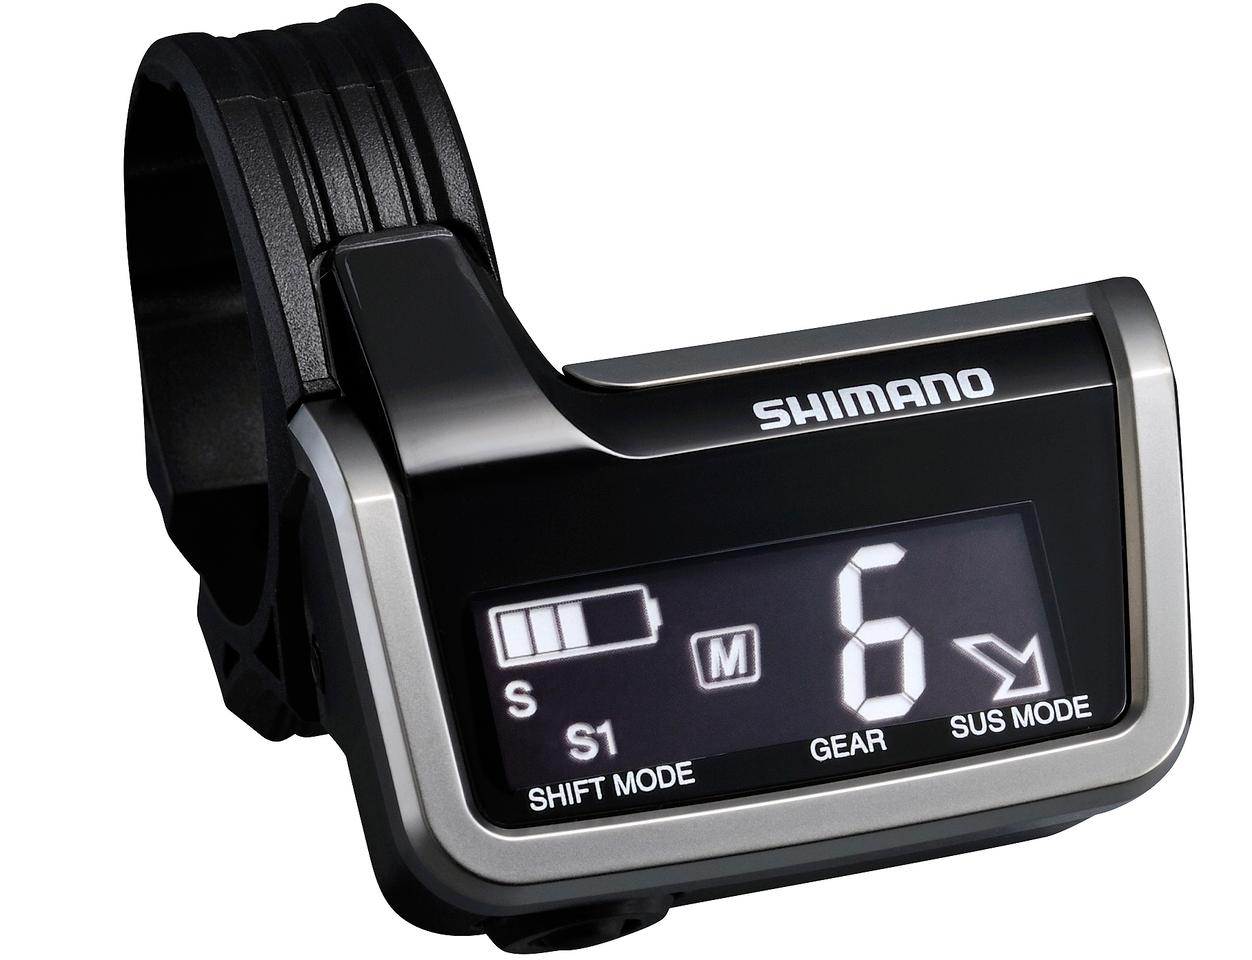 The system's SC-M9050 Display Unit